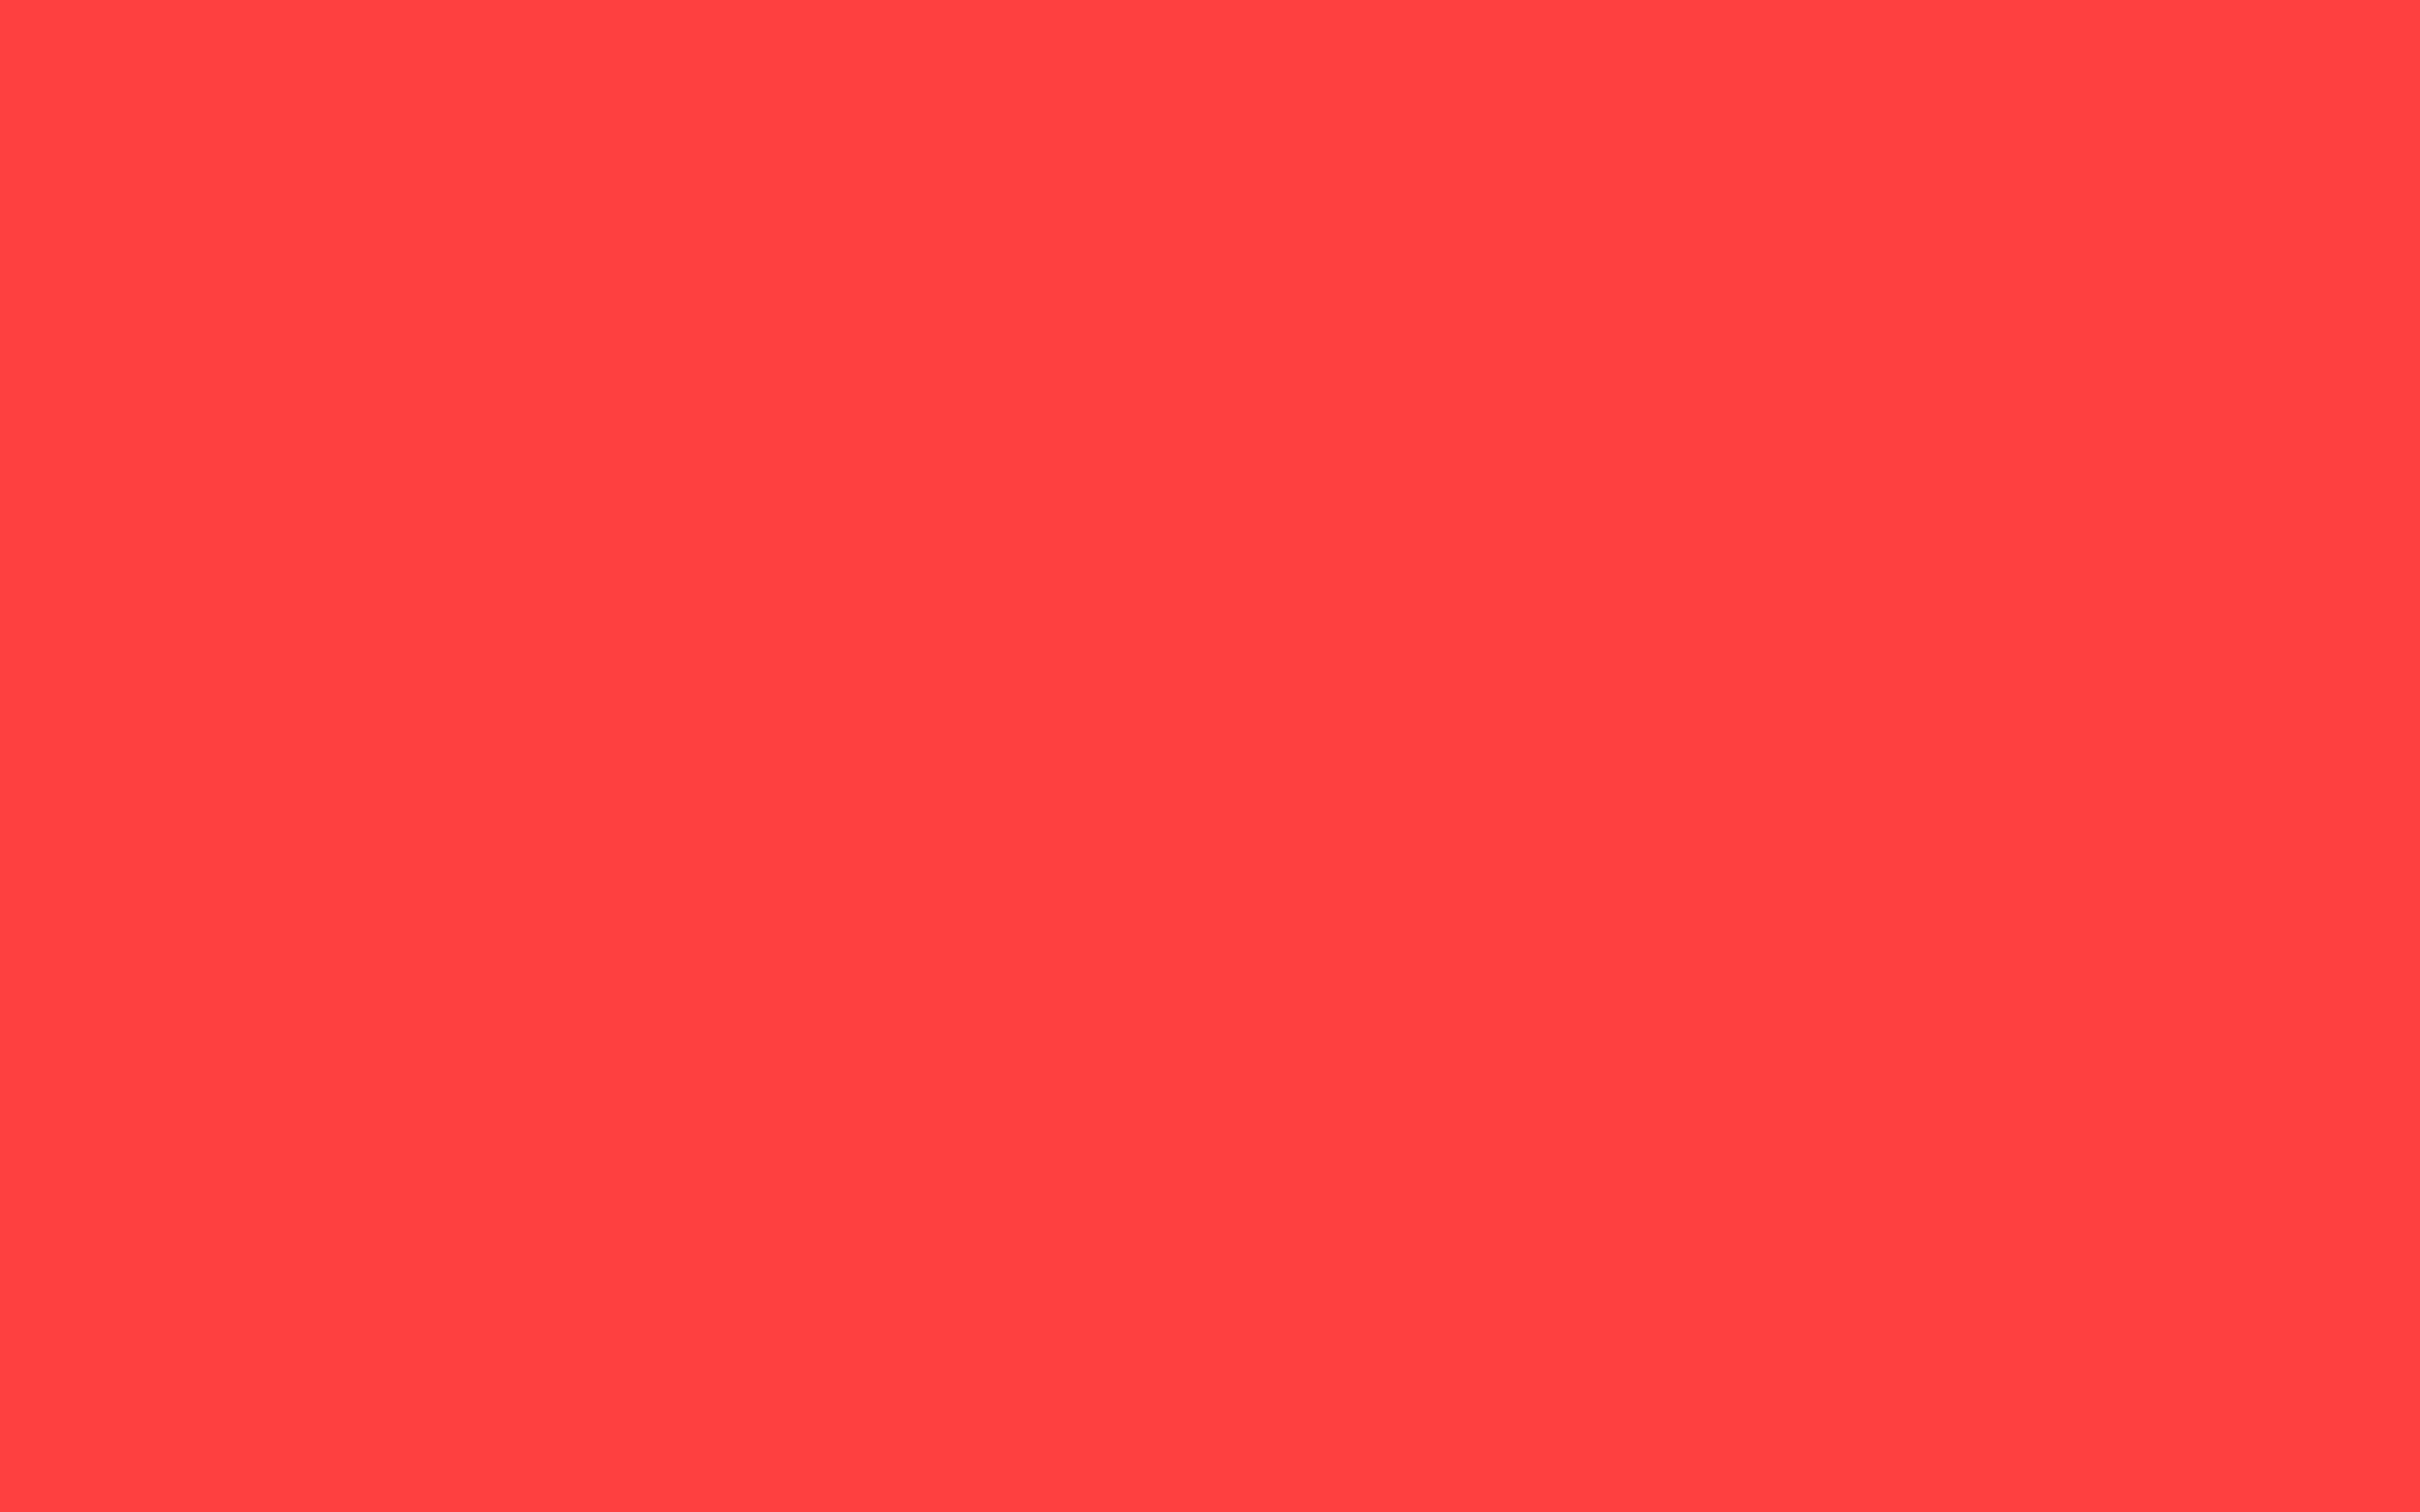 2880x1800 Coral Red Solid Color Background